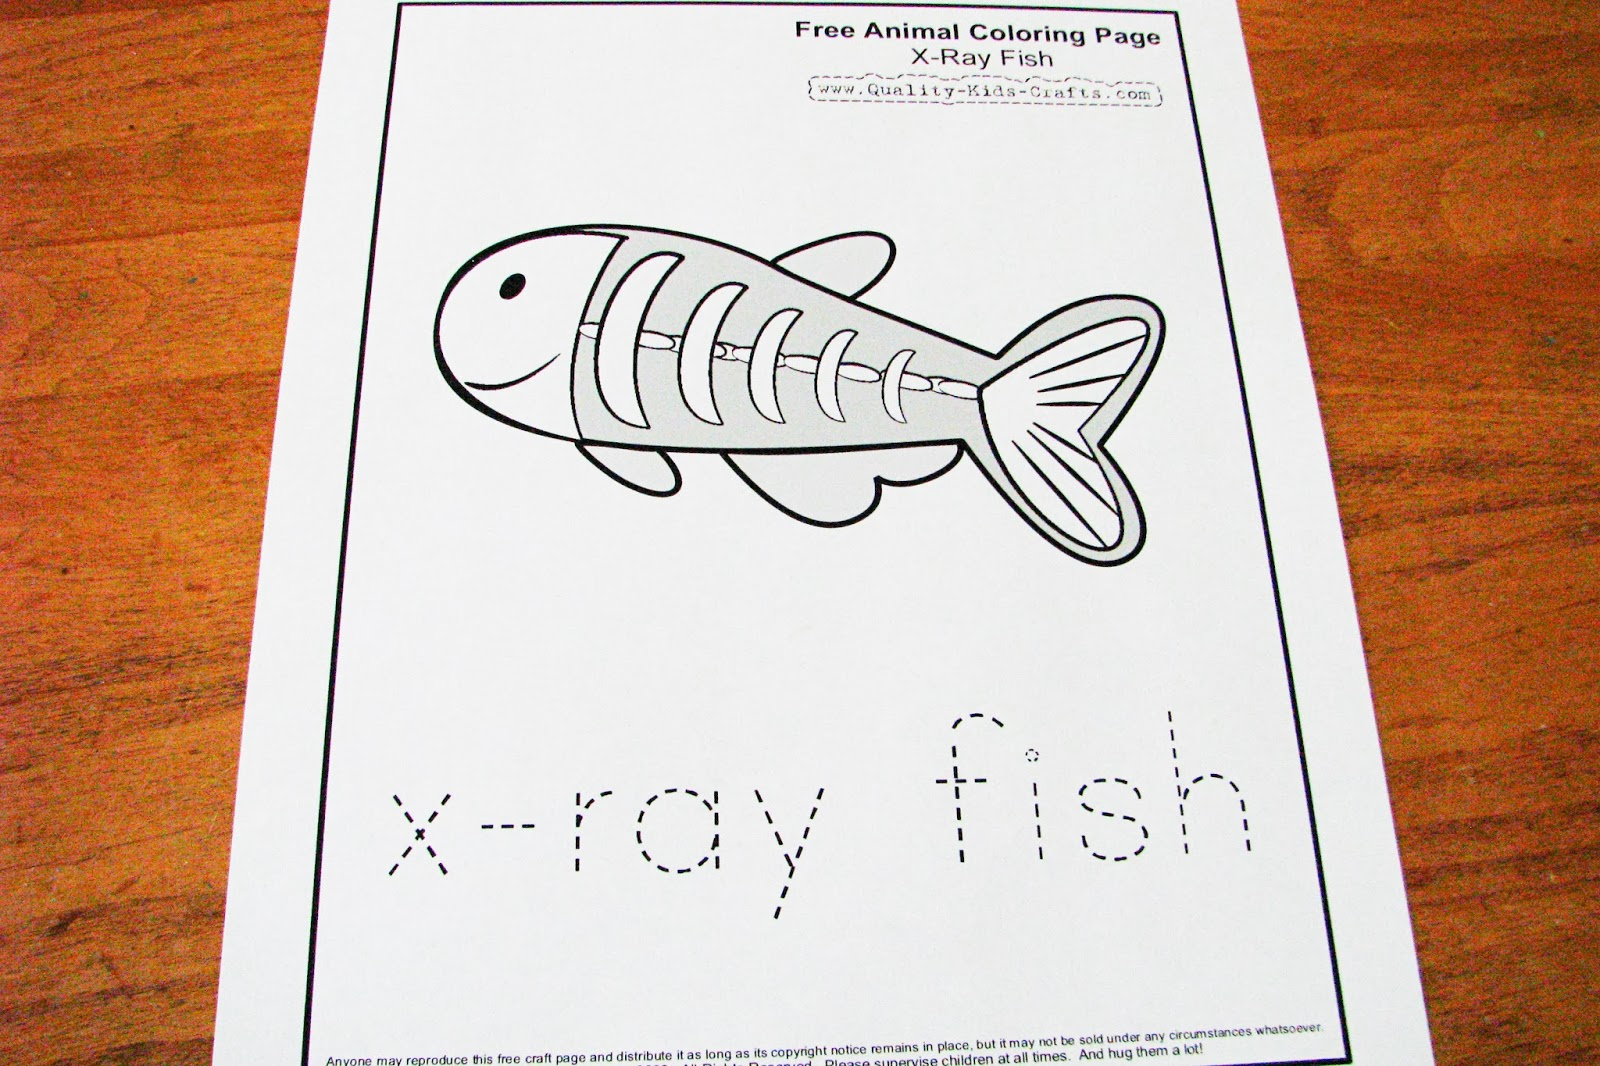 Free coloring pages x ray - Letter X X Ray Fish Preschool Theme